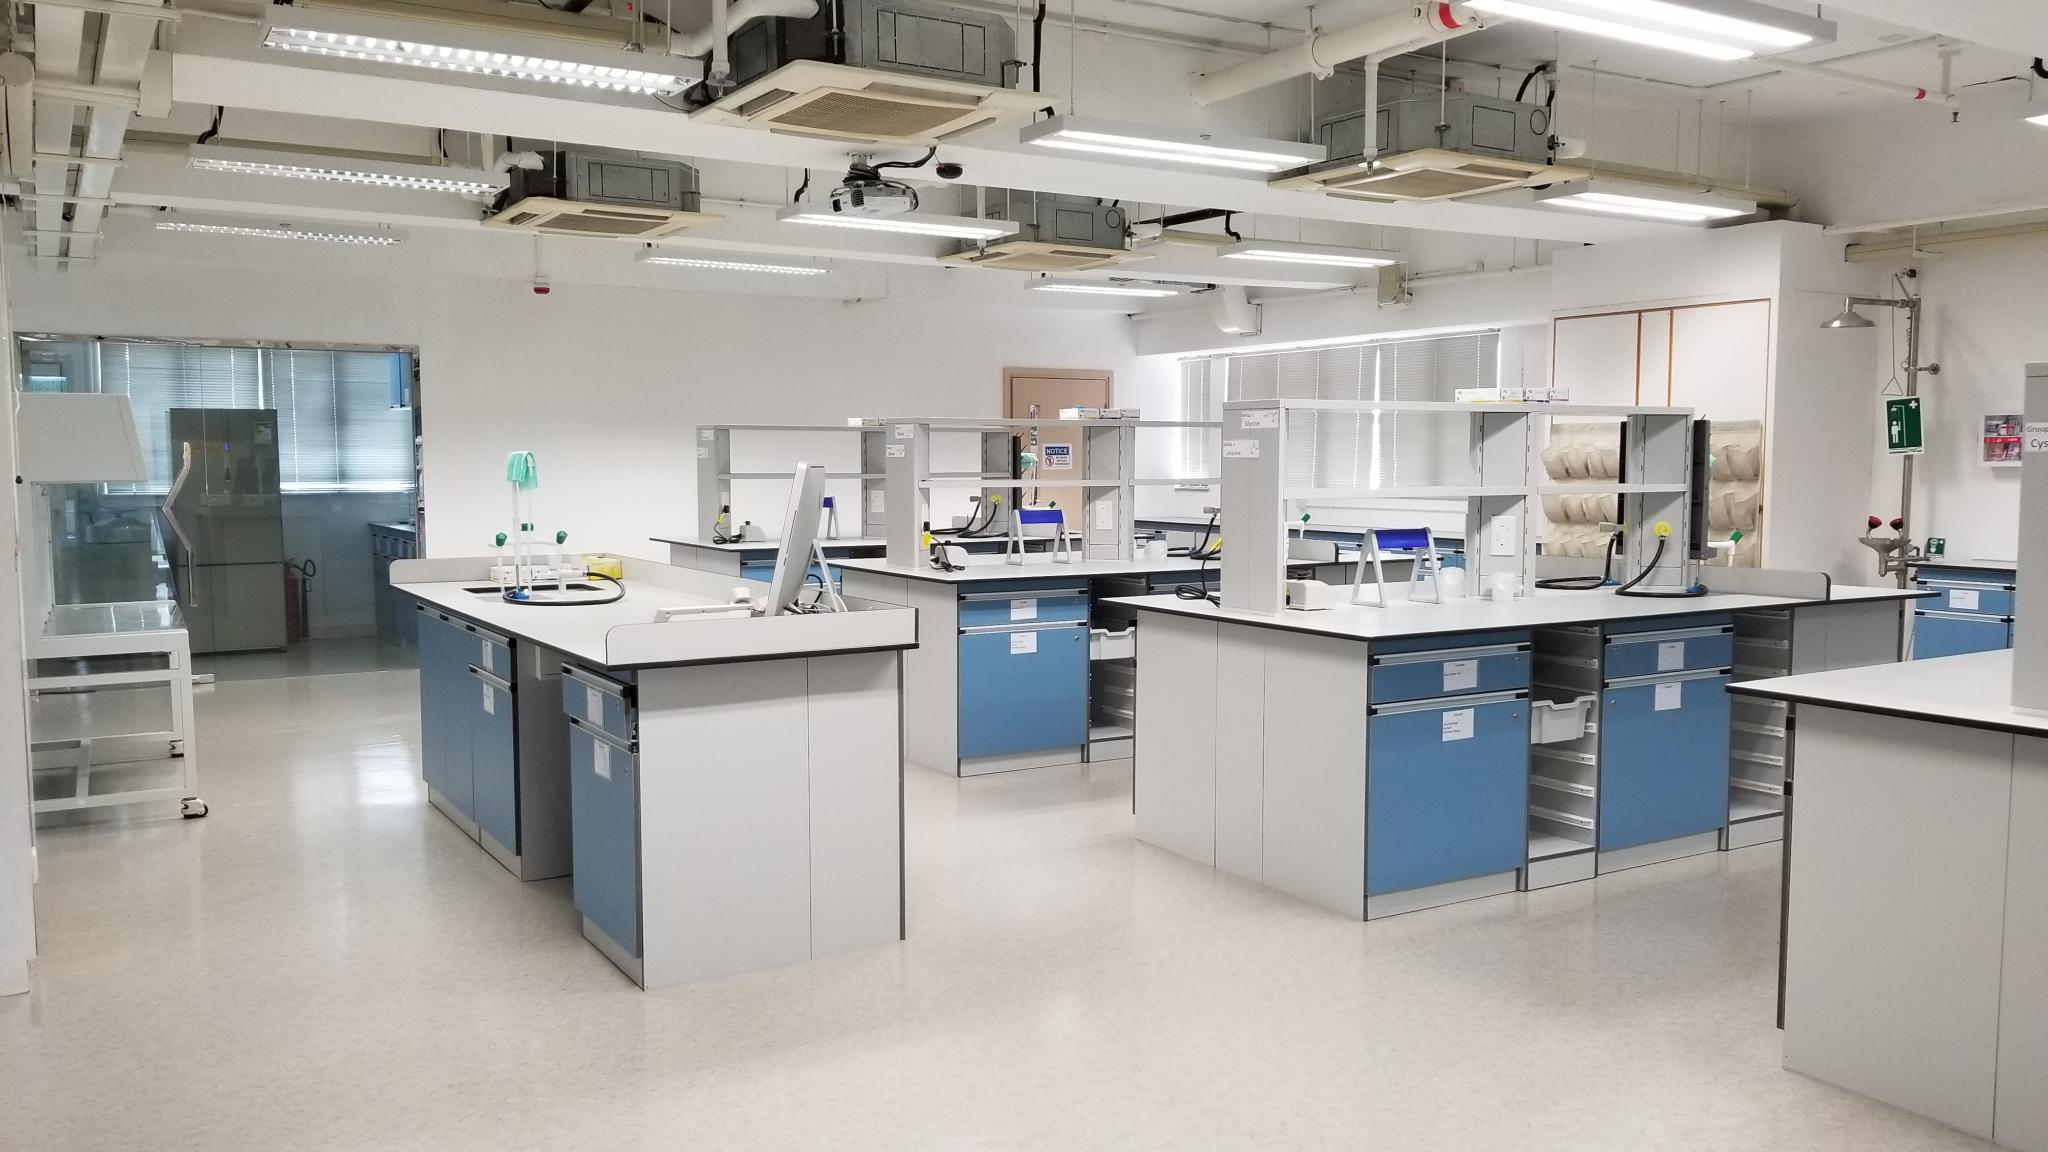 The biotechnology laboratory is about 1228 square feet with new lab tools that drive advances in biotechnology researches. It can accommodate up to 36 students to do experiments.